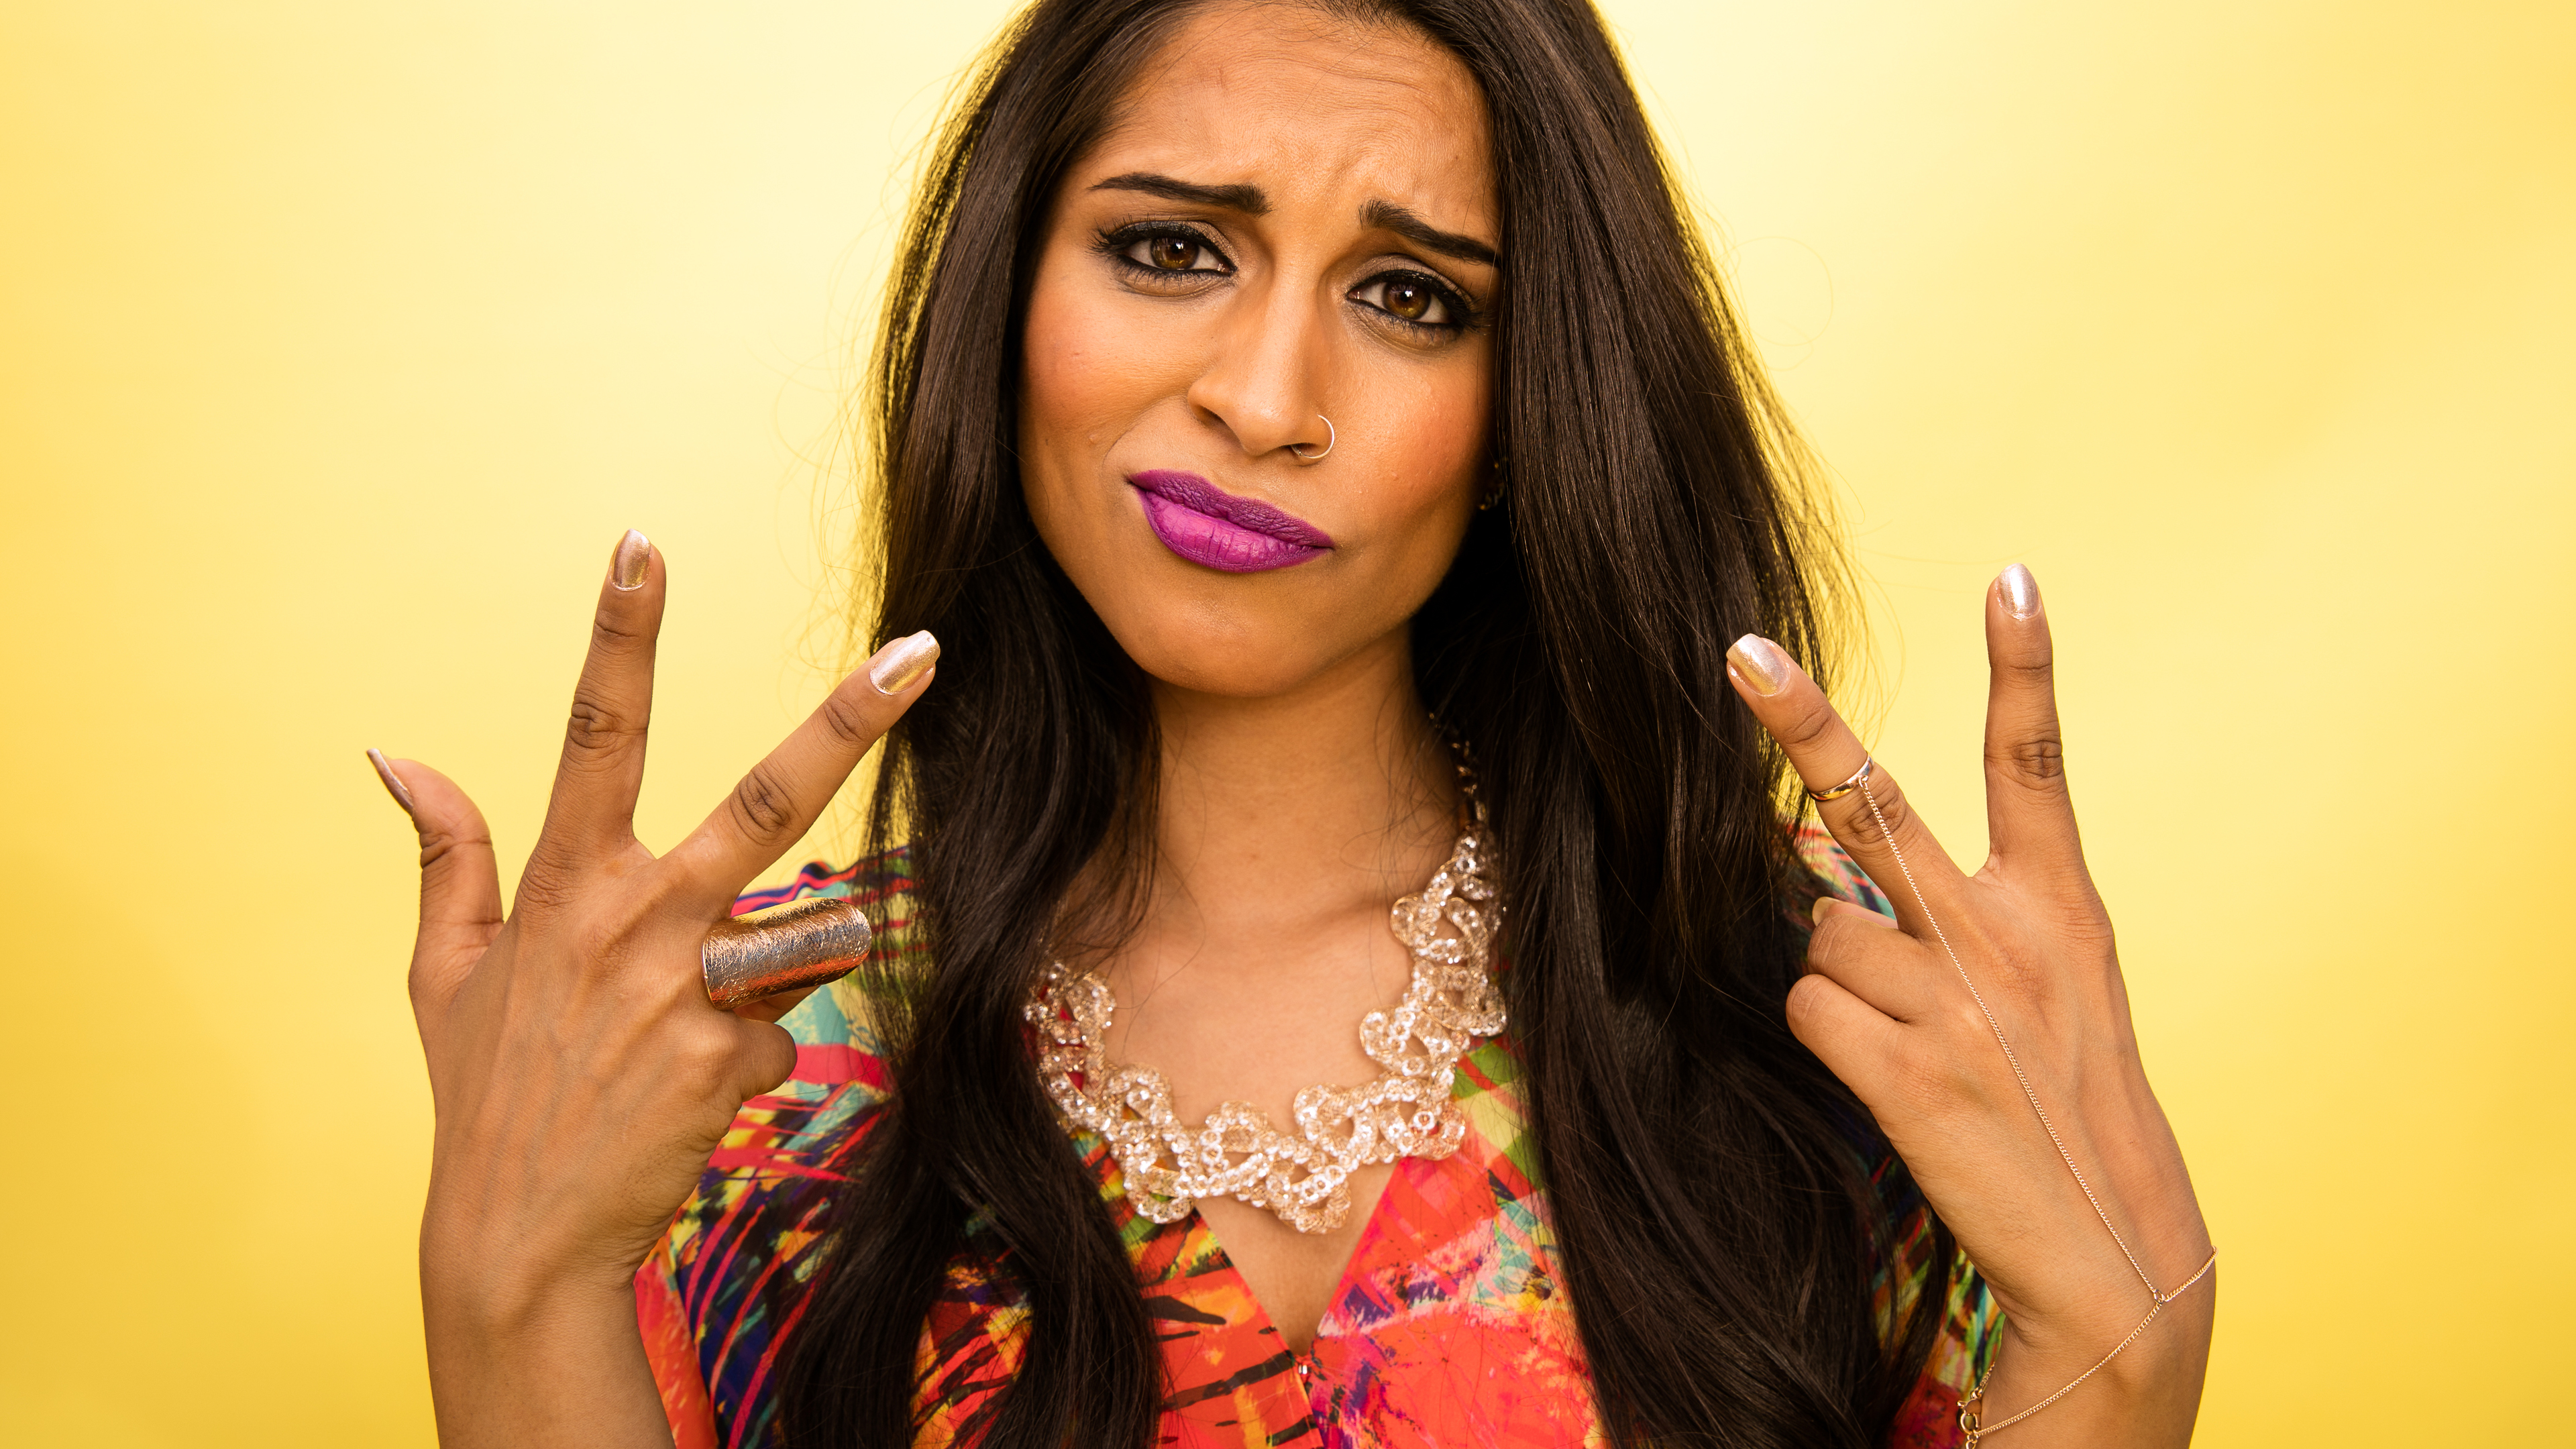 lilly singh 1536863254 - Lilly Singh - youtube wallpapers, woman wallpapers, superwoman wallpapers, lilly singh wallpapers, hd-wallpapers, girls wallpapers, celebrities wallpapers, 4k-wallpapers